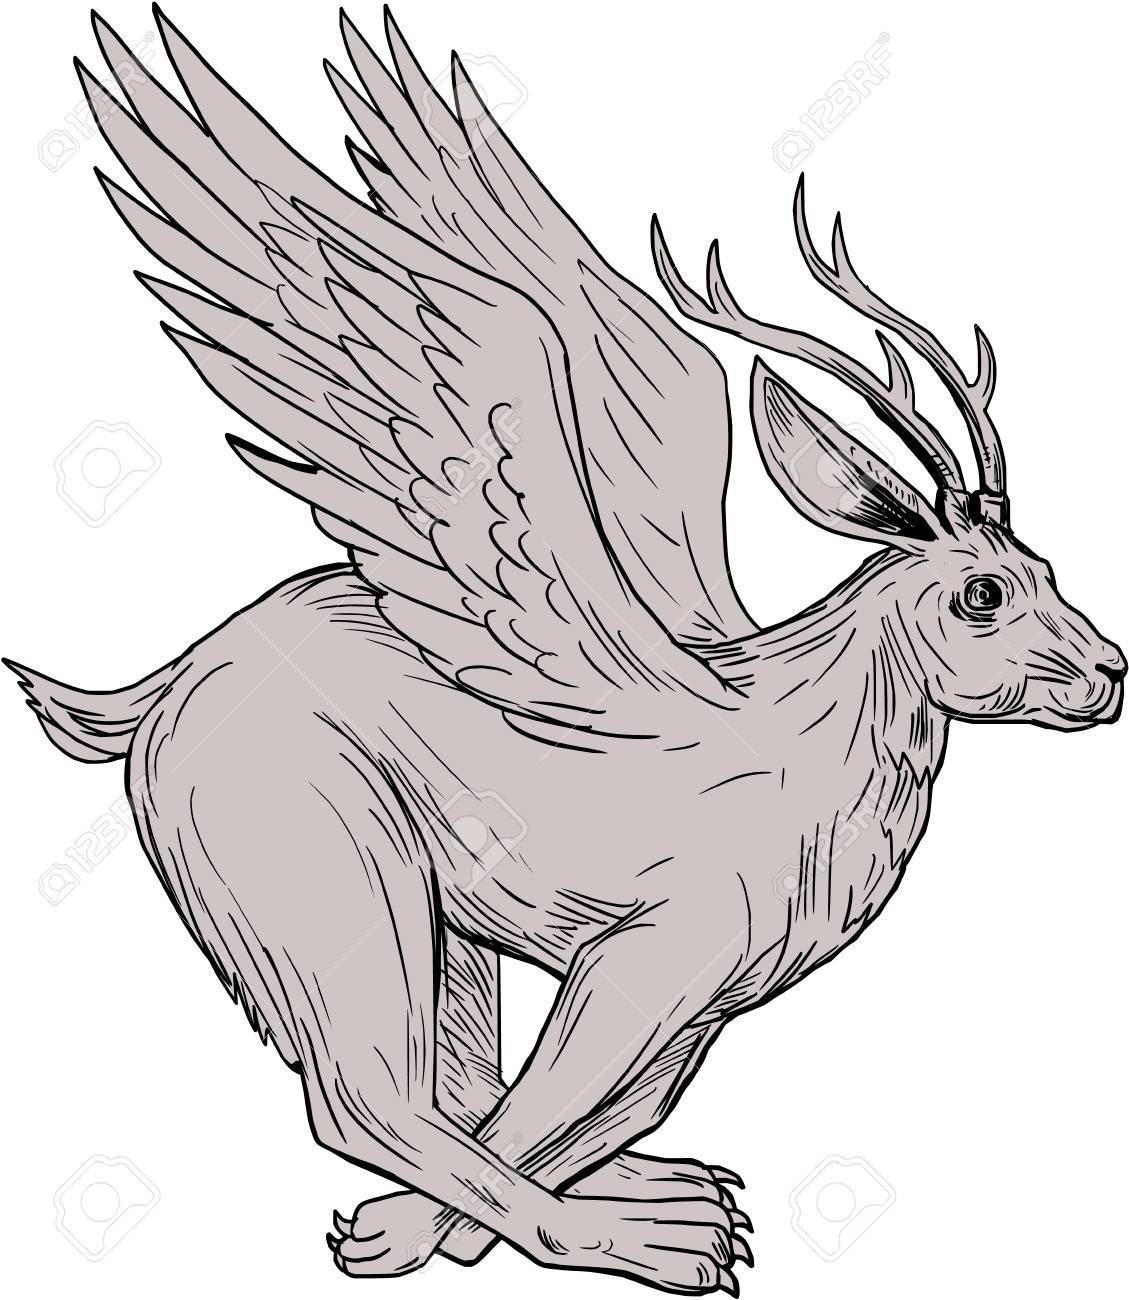 Jackalopes Of Wyoming Myth Or Reality Legends Of America